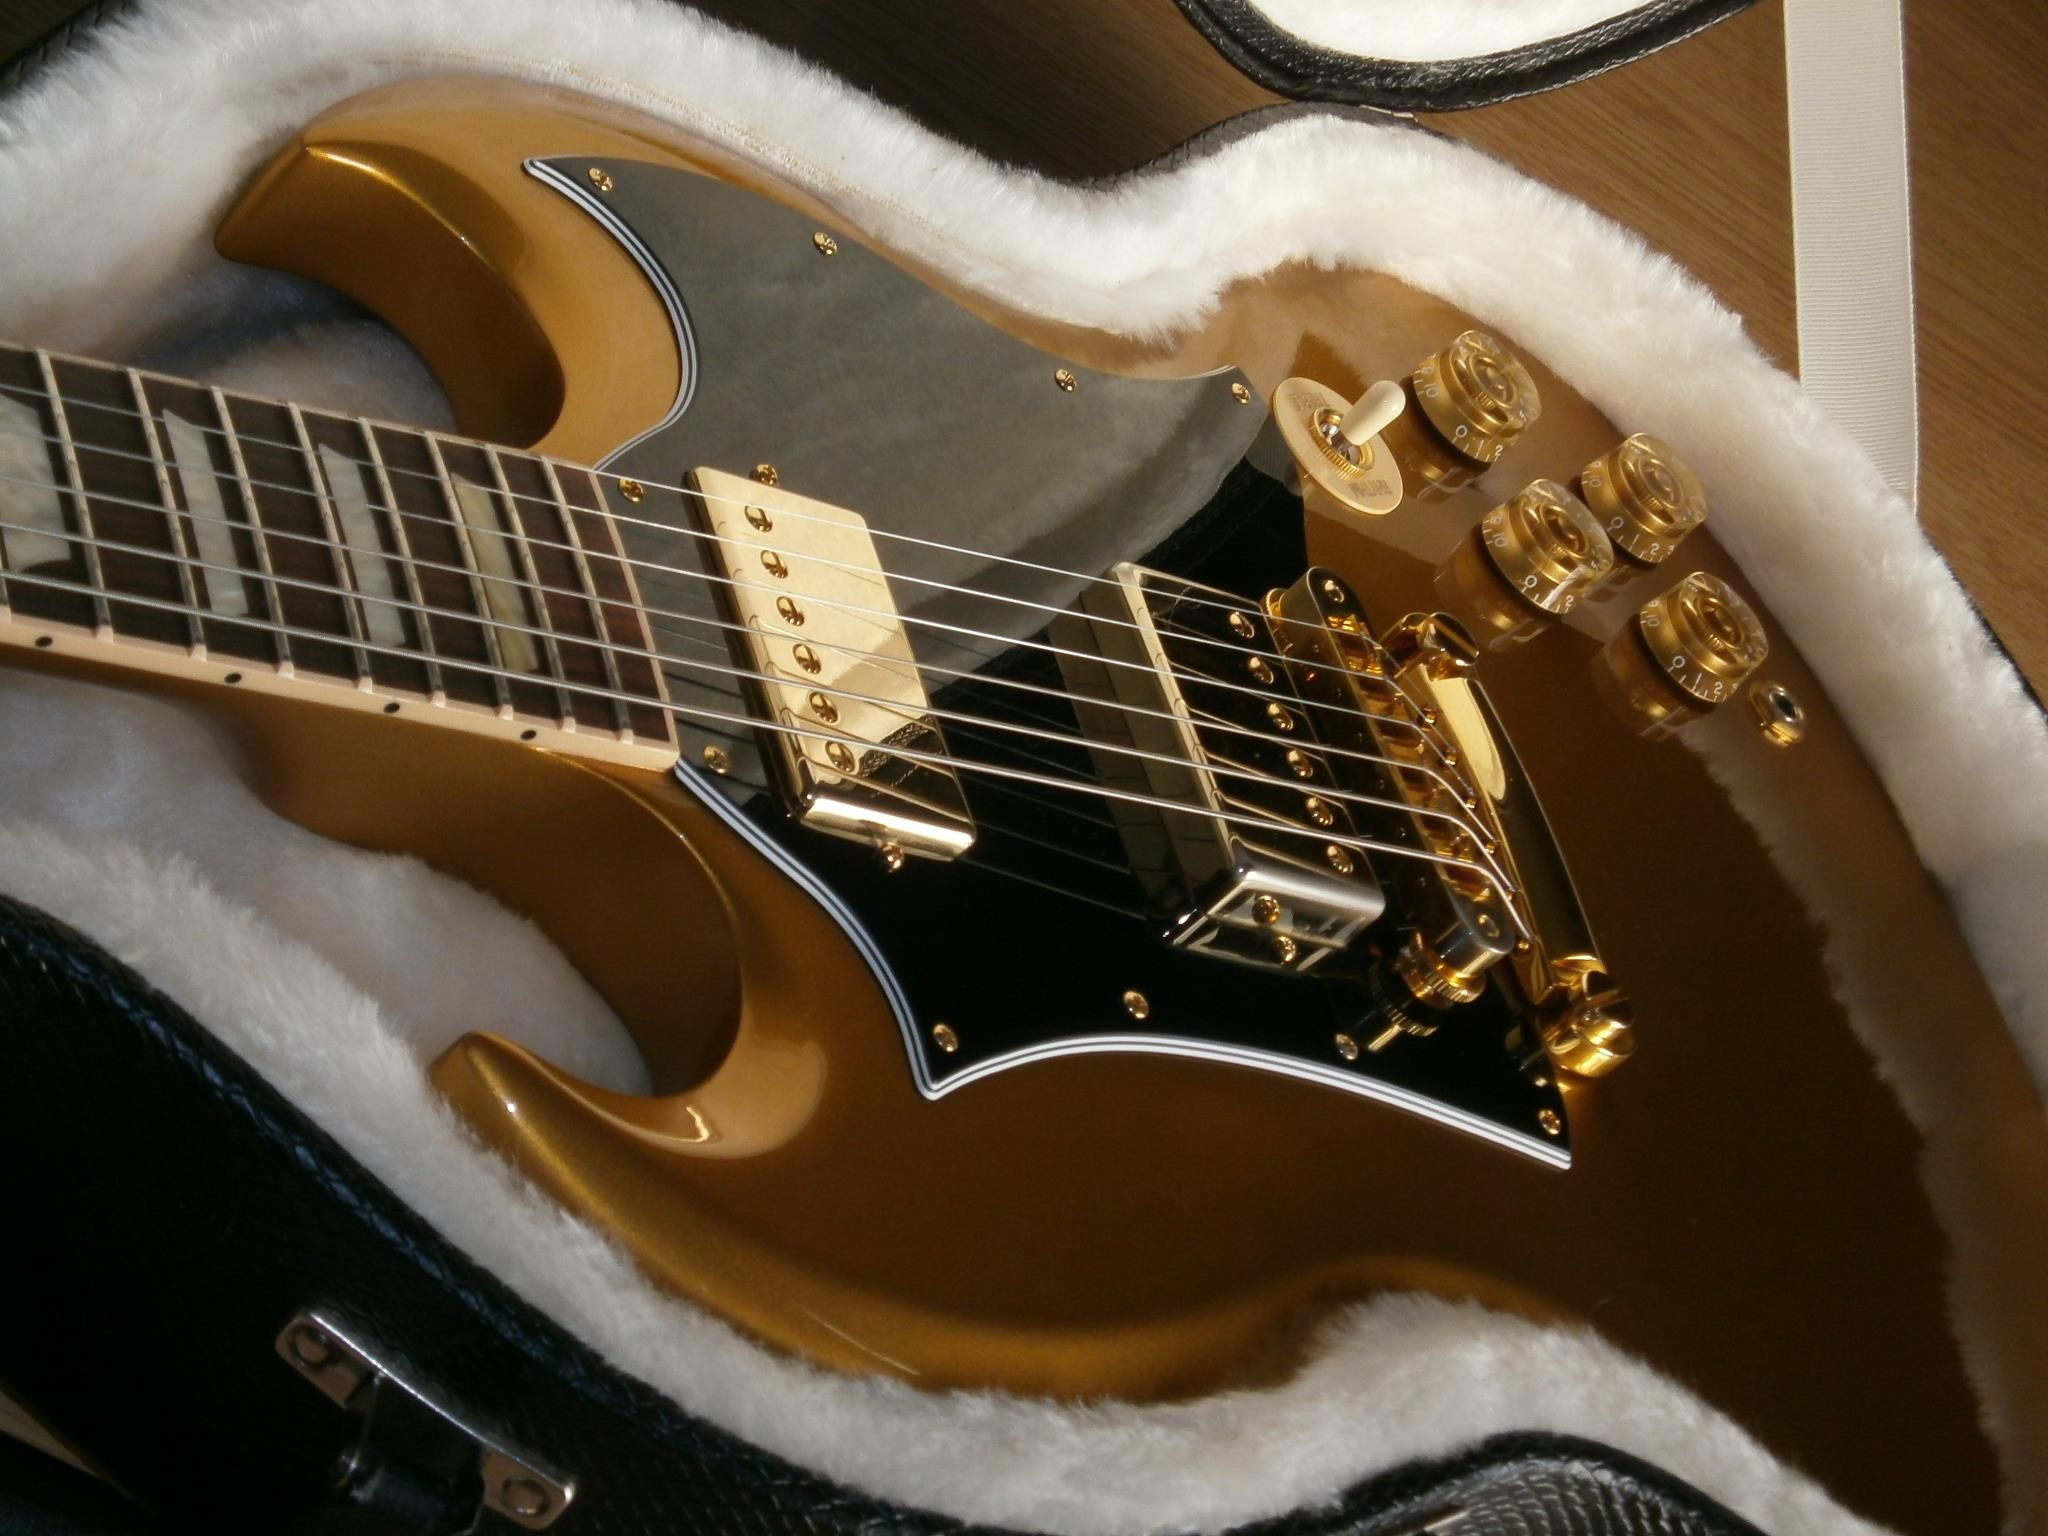 SG stands for Solid Gold (via Gibson's Facebook) https://www.facebook.com/GibsonGuitar